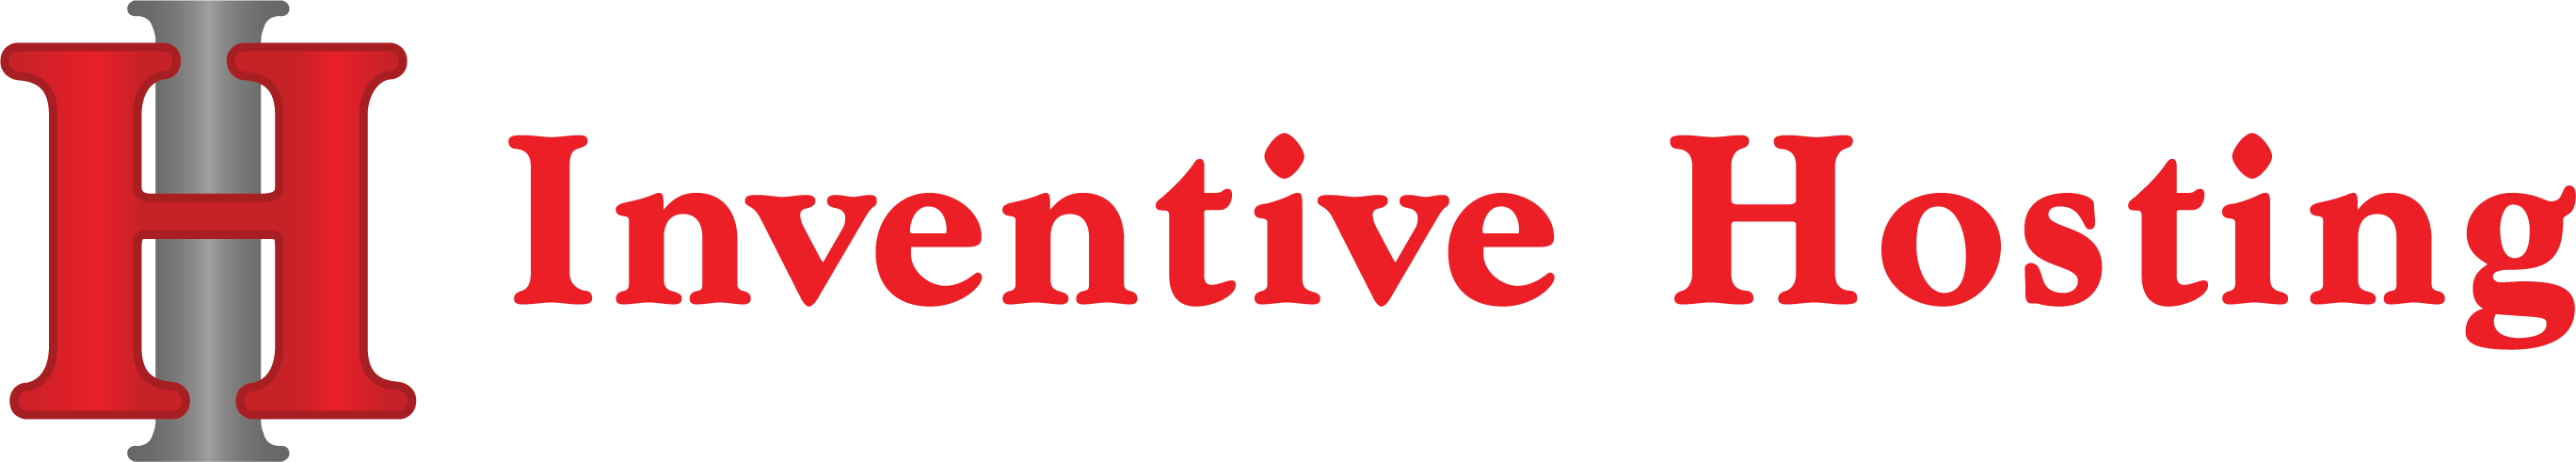 Inventive Hosting Coupons and Promo Code